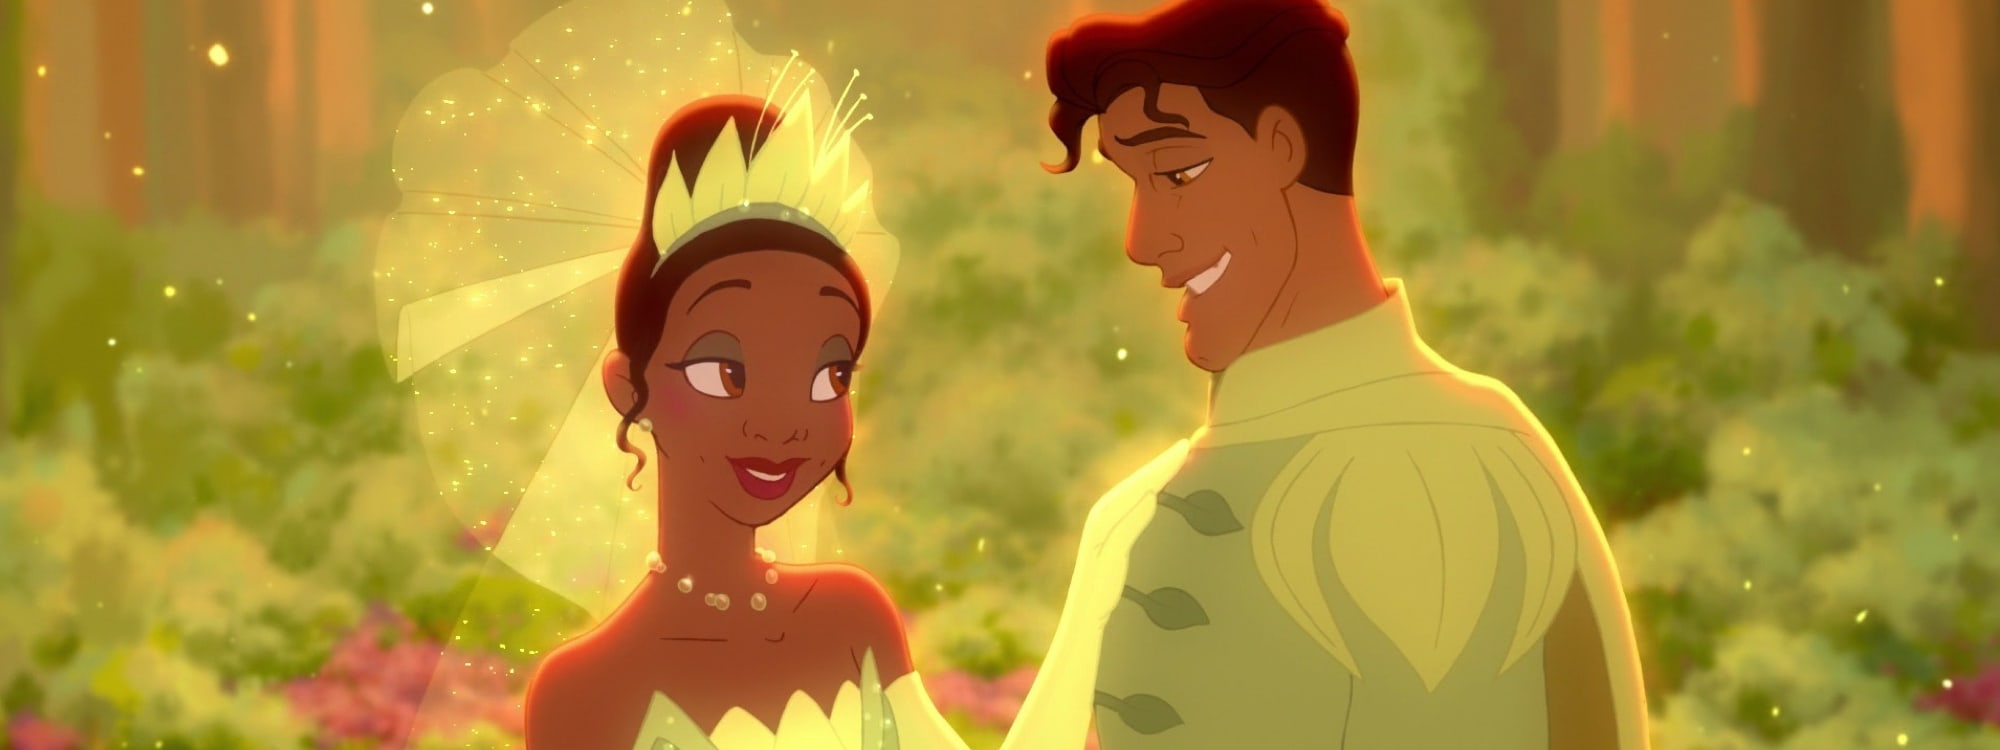 Princess Tiana and Prince Naveen looking at each other